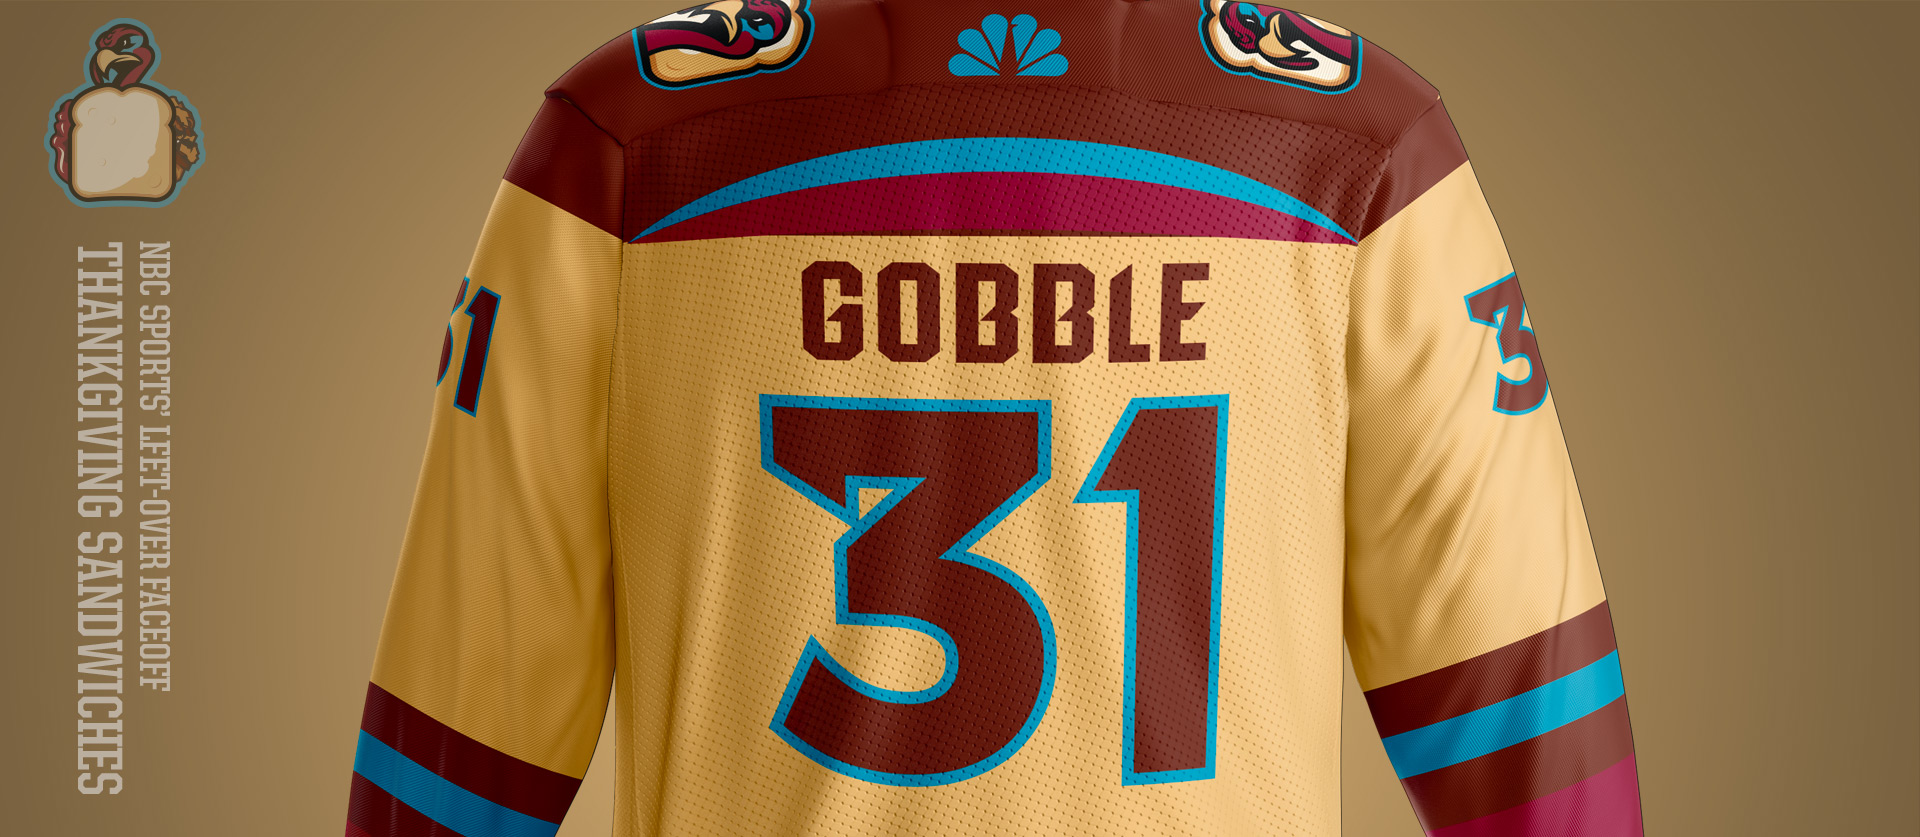 Gobbler Sandwich Front - Football Uniform Design for NBC Sports Thanksgiving Second Feast Face-Off